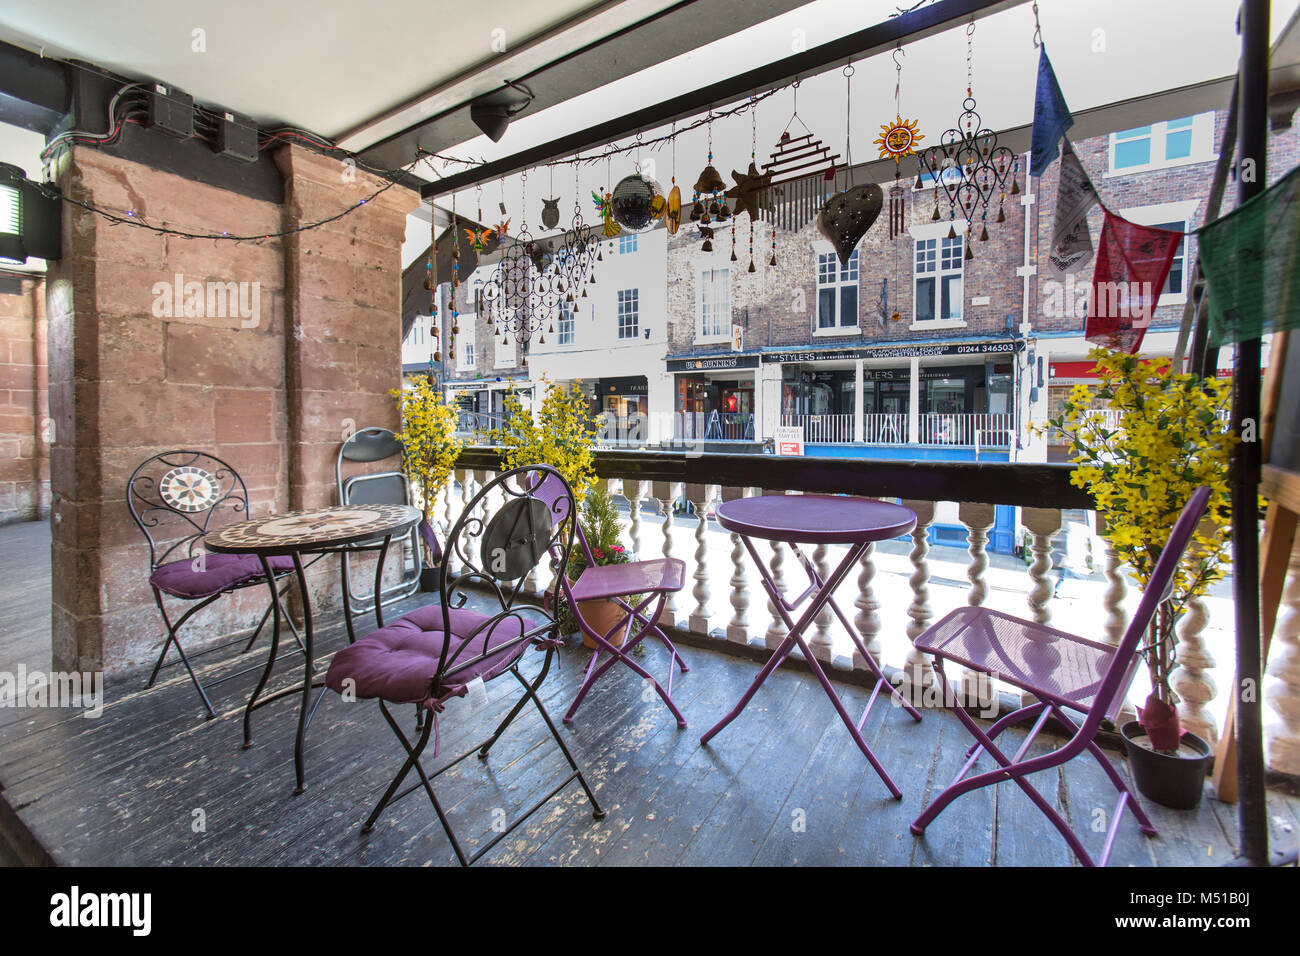 City of Chester, England.  Picturesque view of a café on Bridge Street Rows, with Bridge Street pedestrian - Stock Image